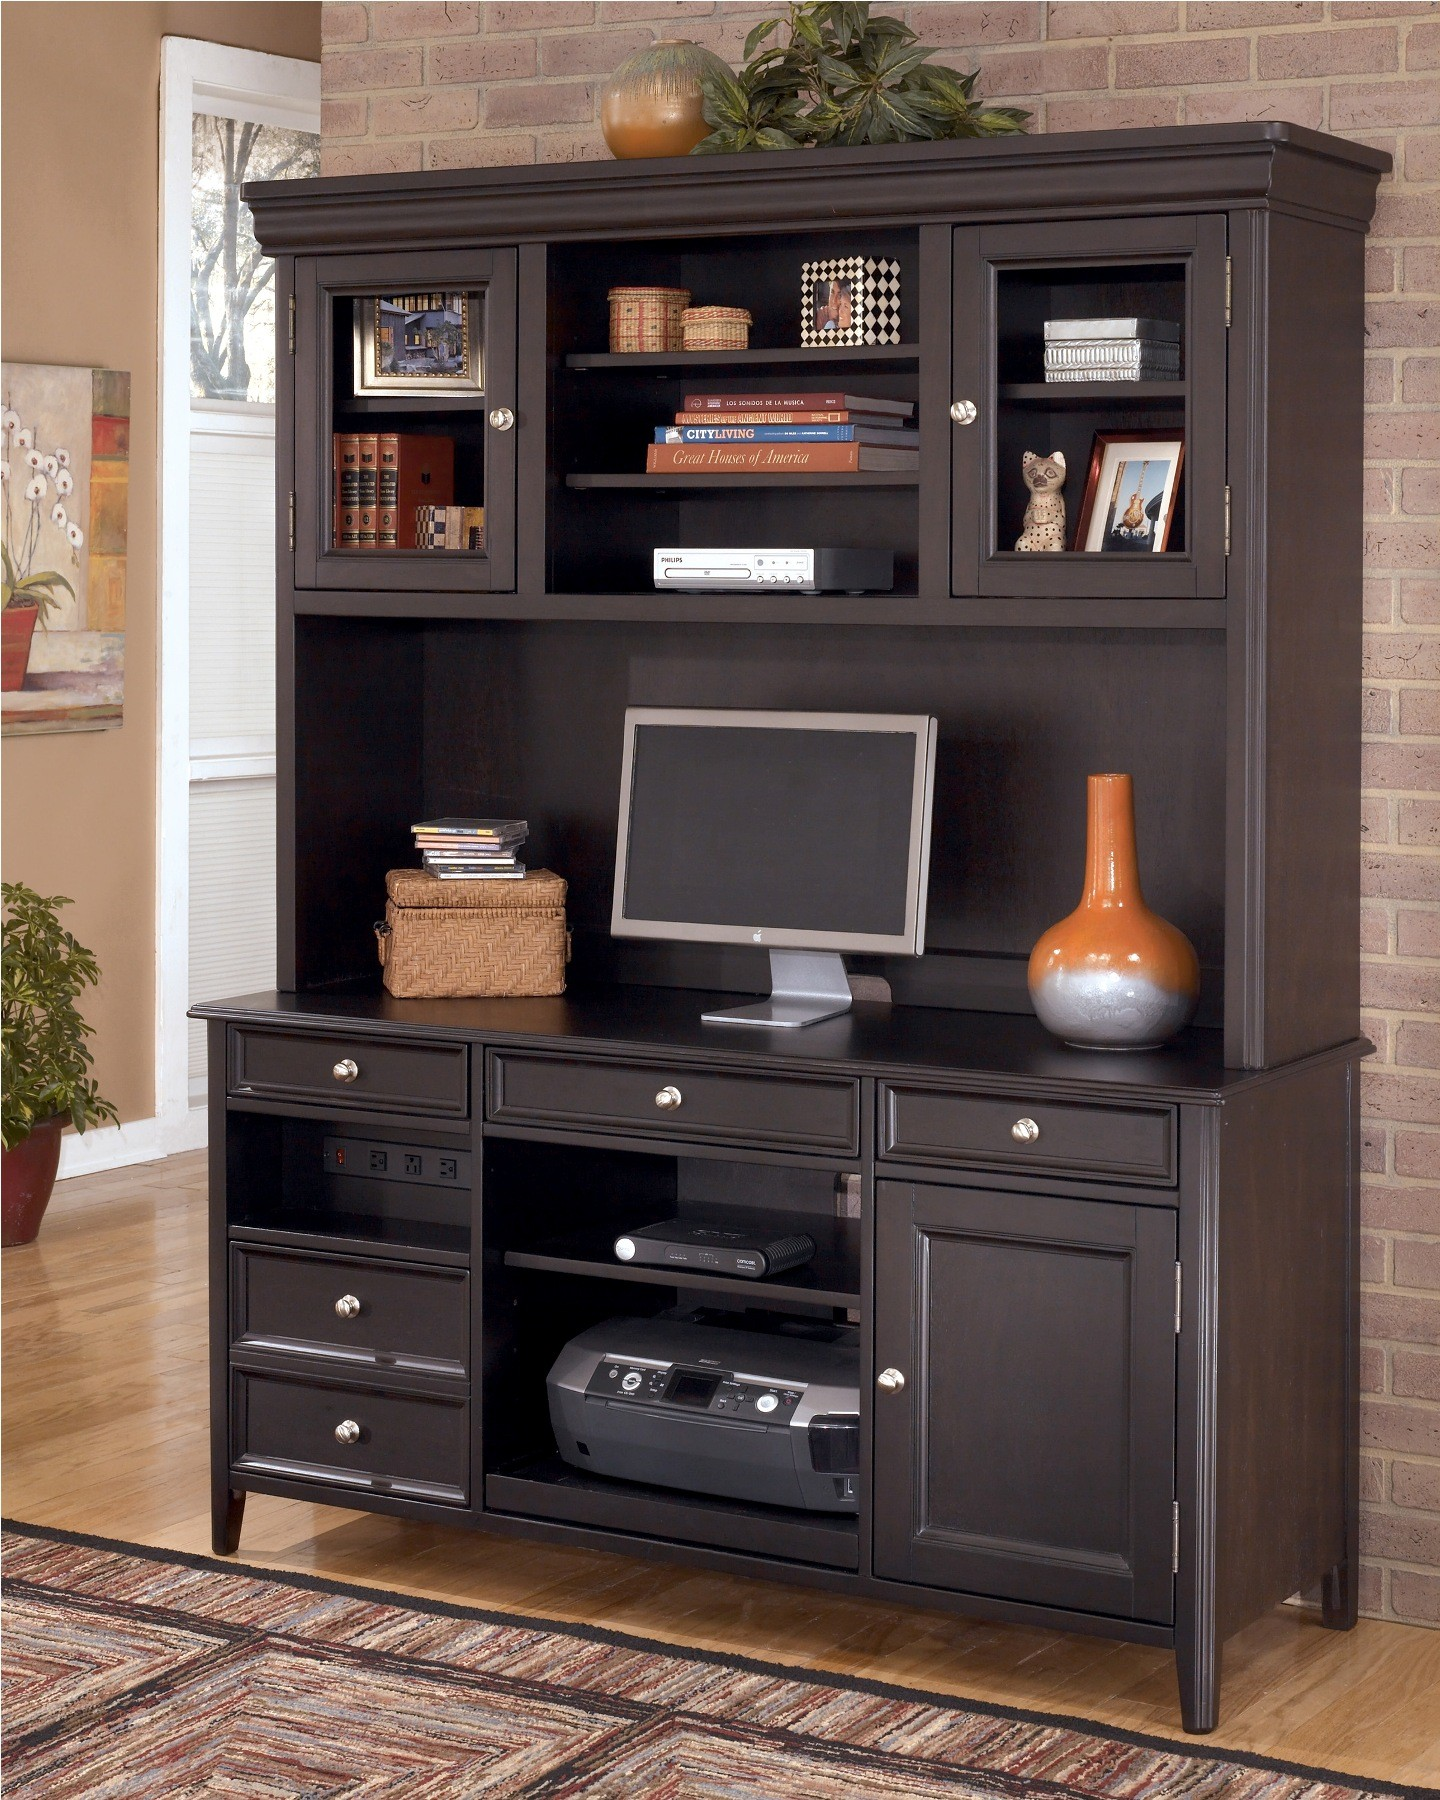 Ashley carlyle large office credenza w large hutch h371 office furniture - Home office desk with hutch ...